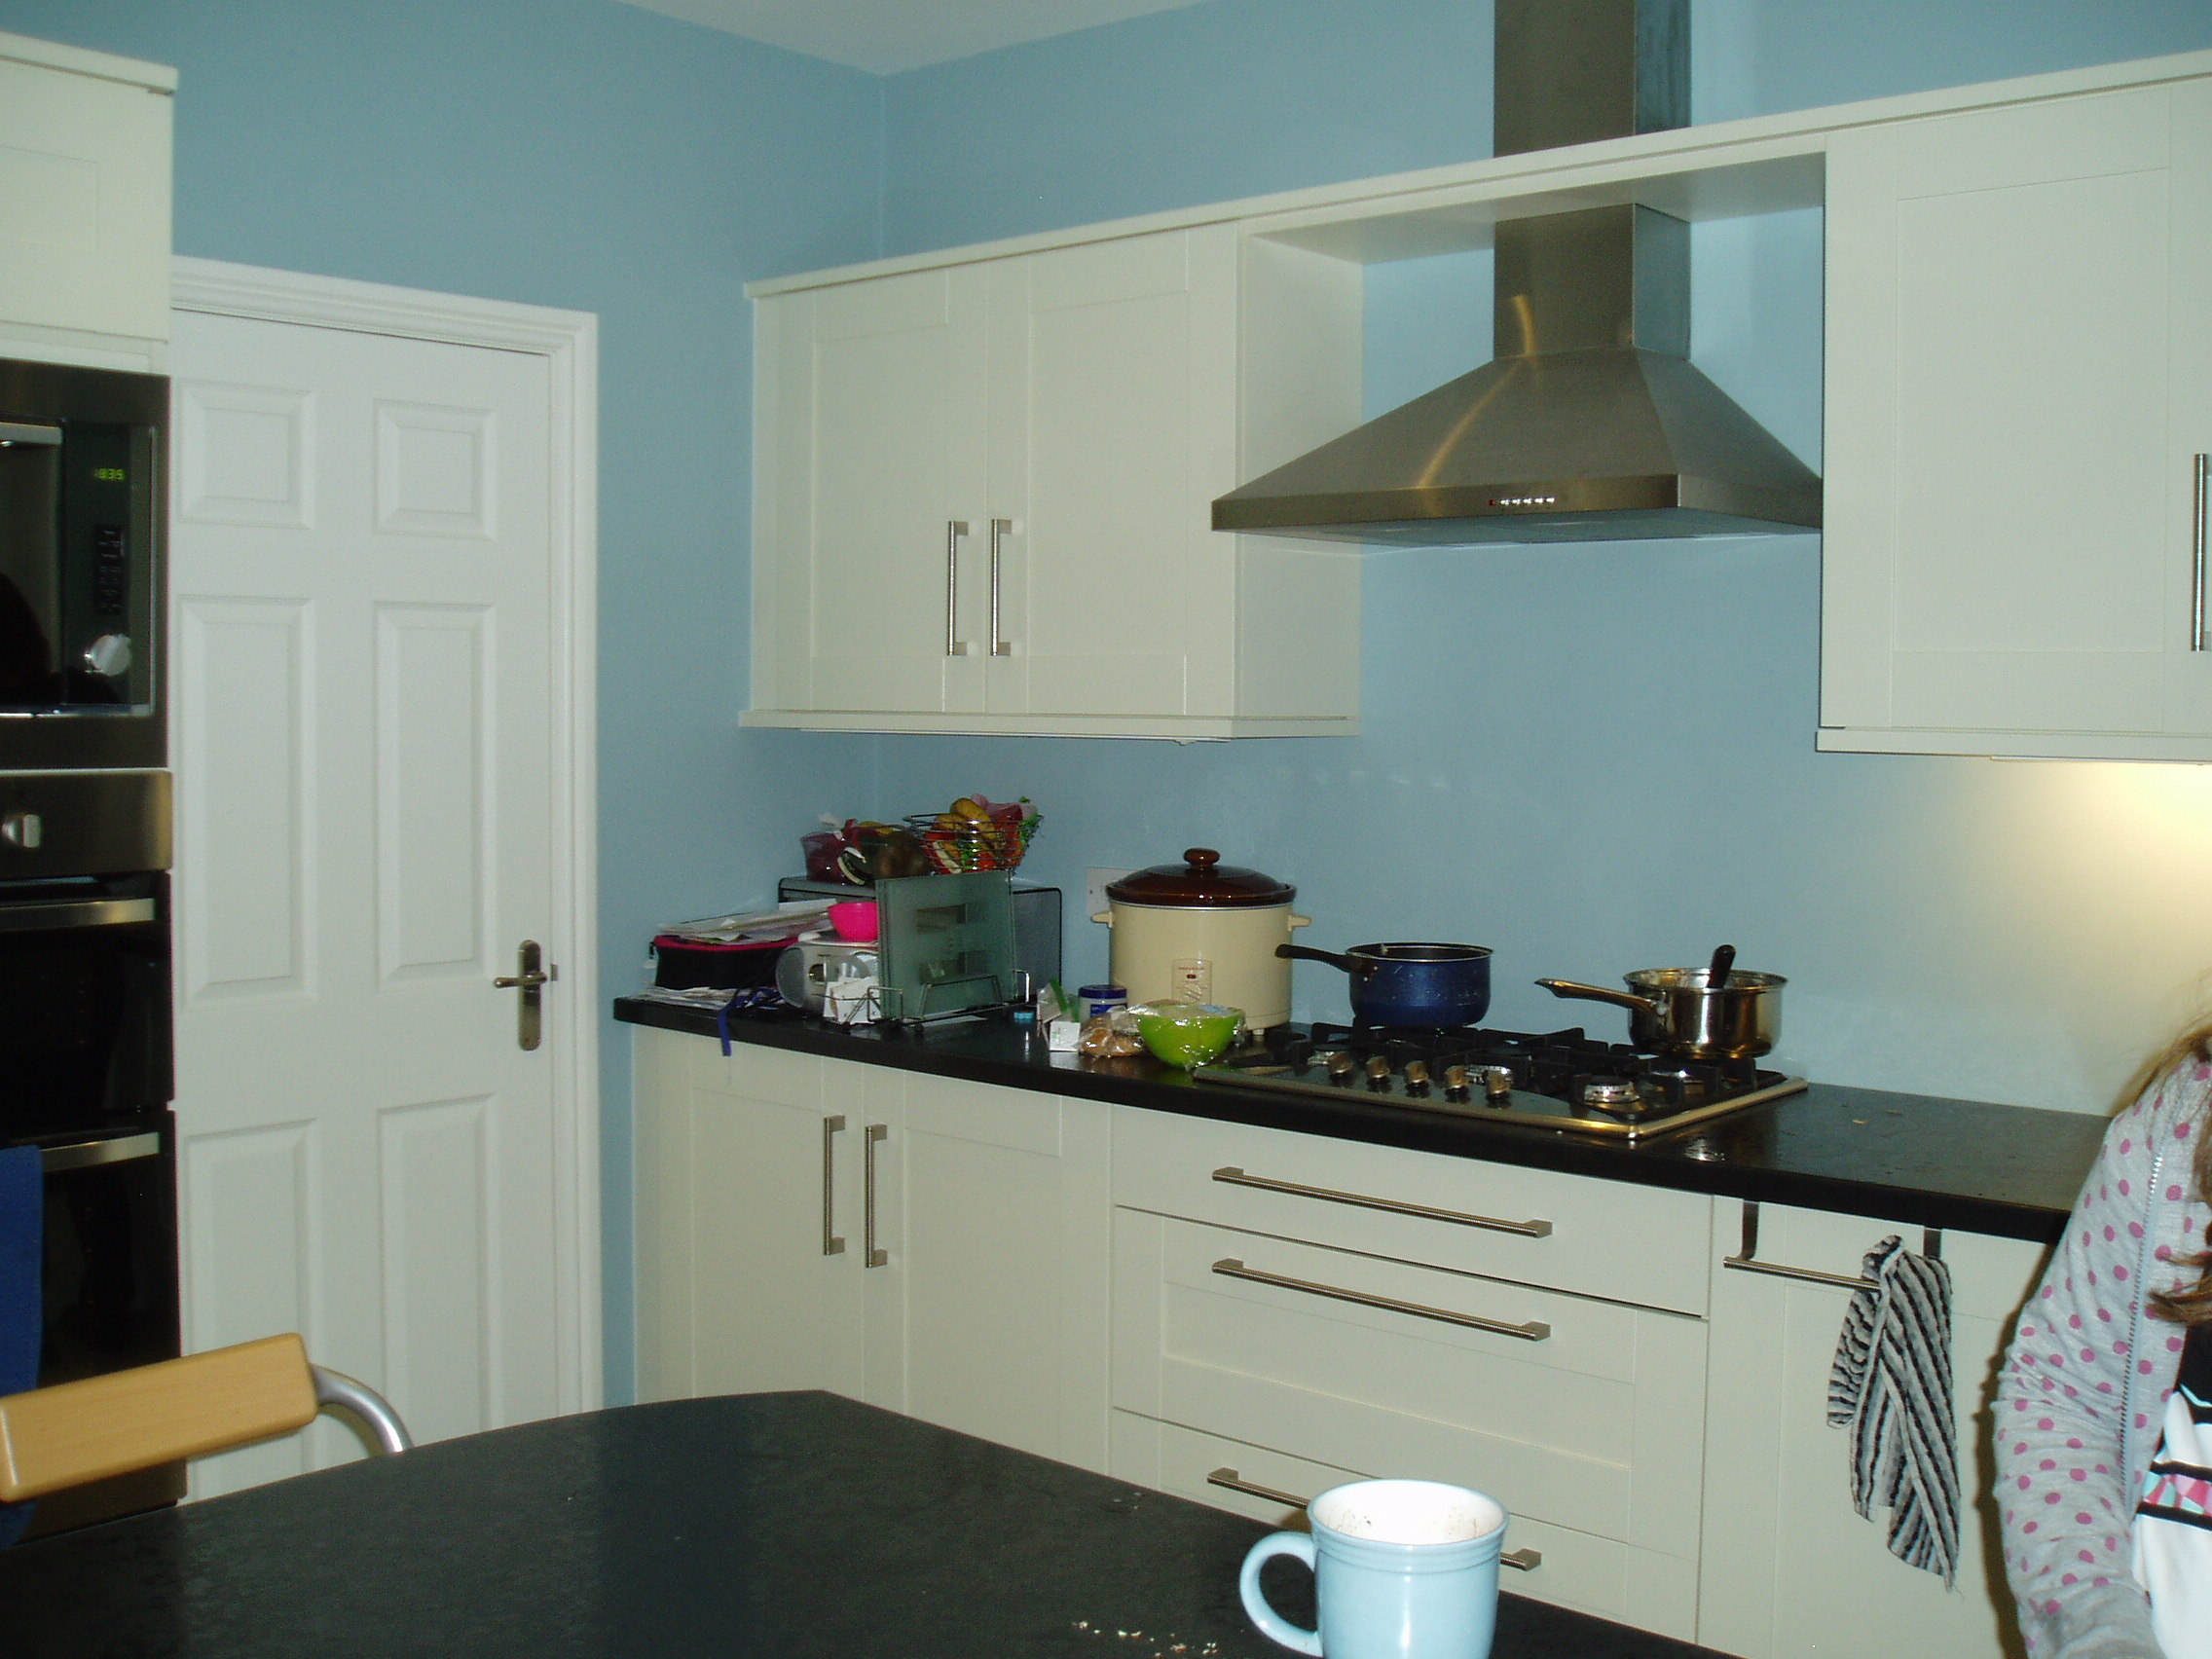 Kenilworth Rd Kitchen Extension with toilet utility room and